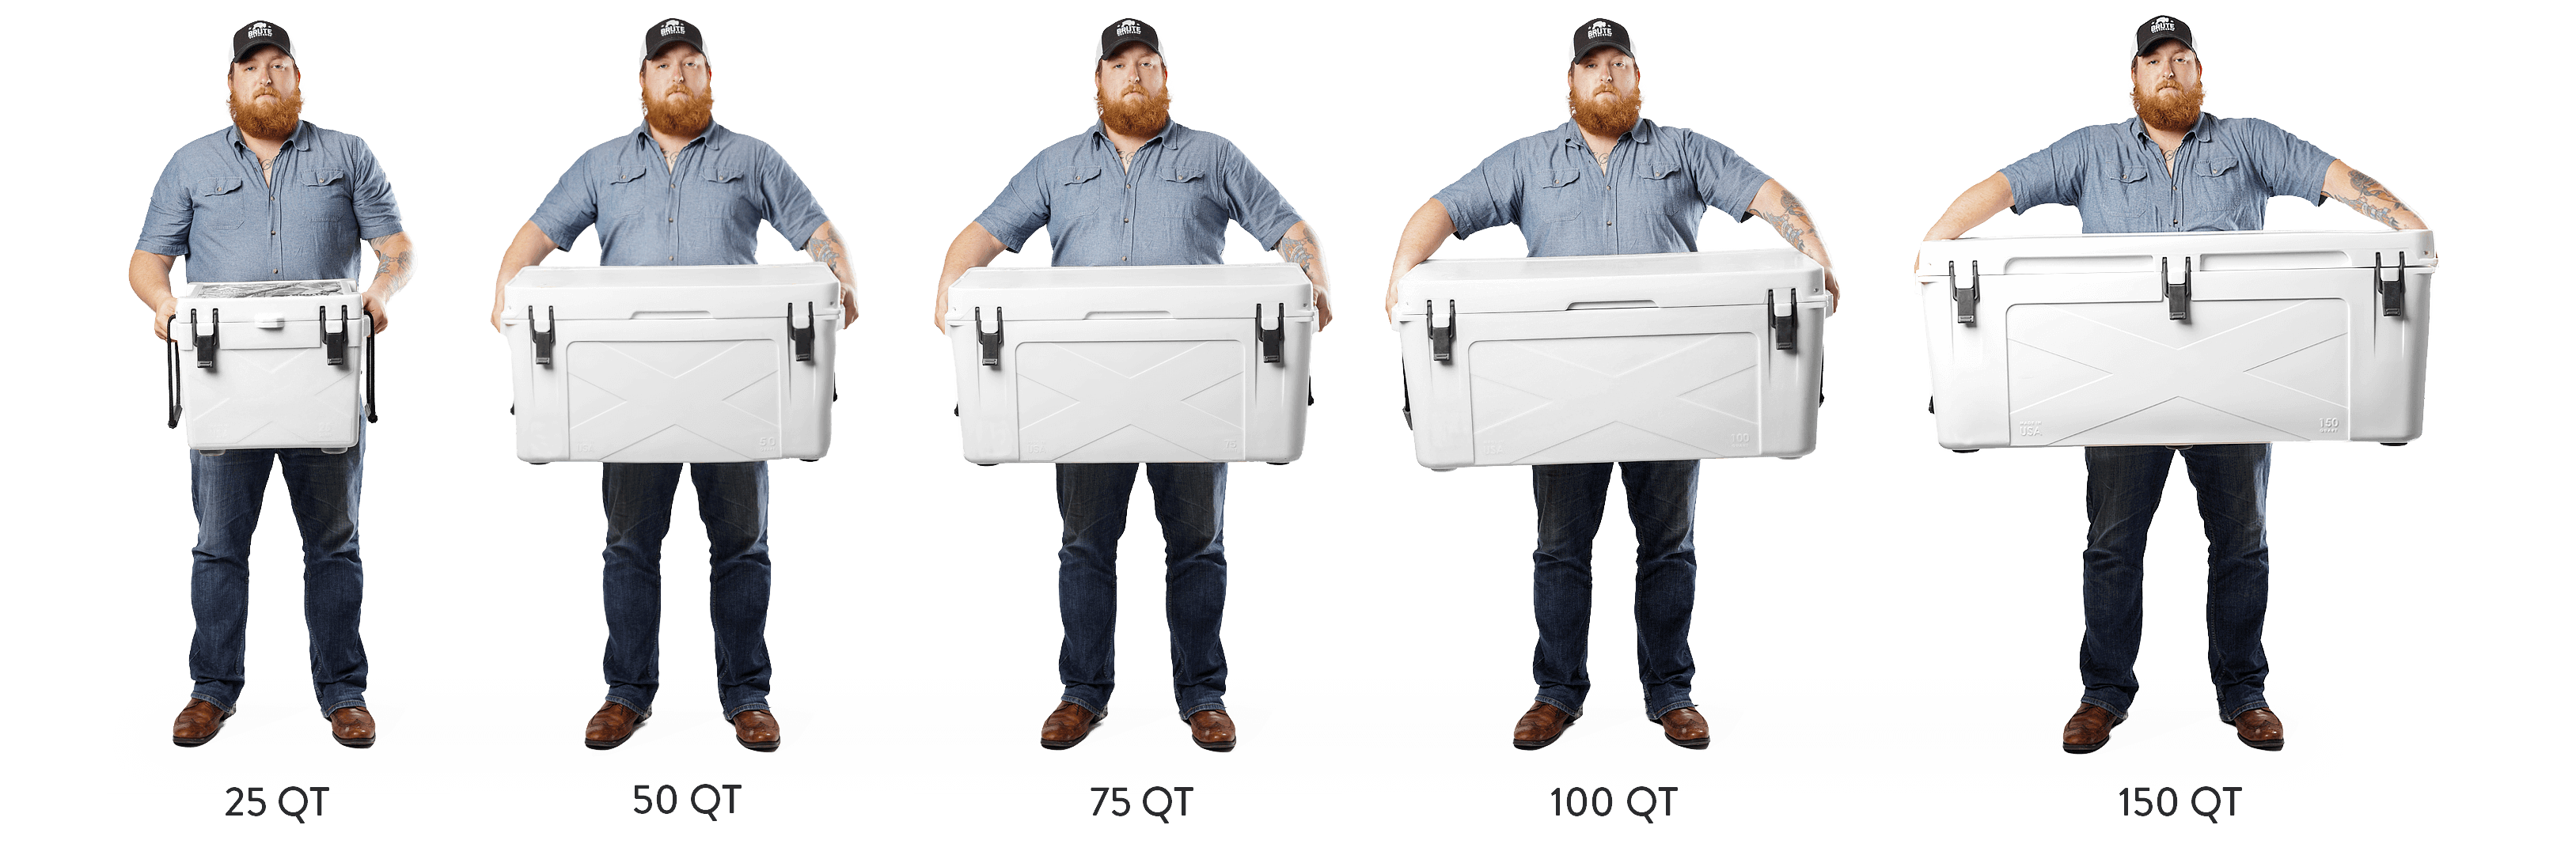 Truck Bed Size Chart >> Bison Coolers | Rotomolded Coolers| Best Ice Chests Coolers